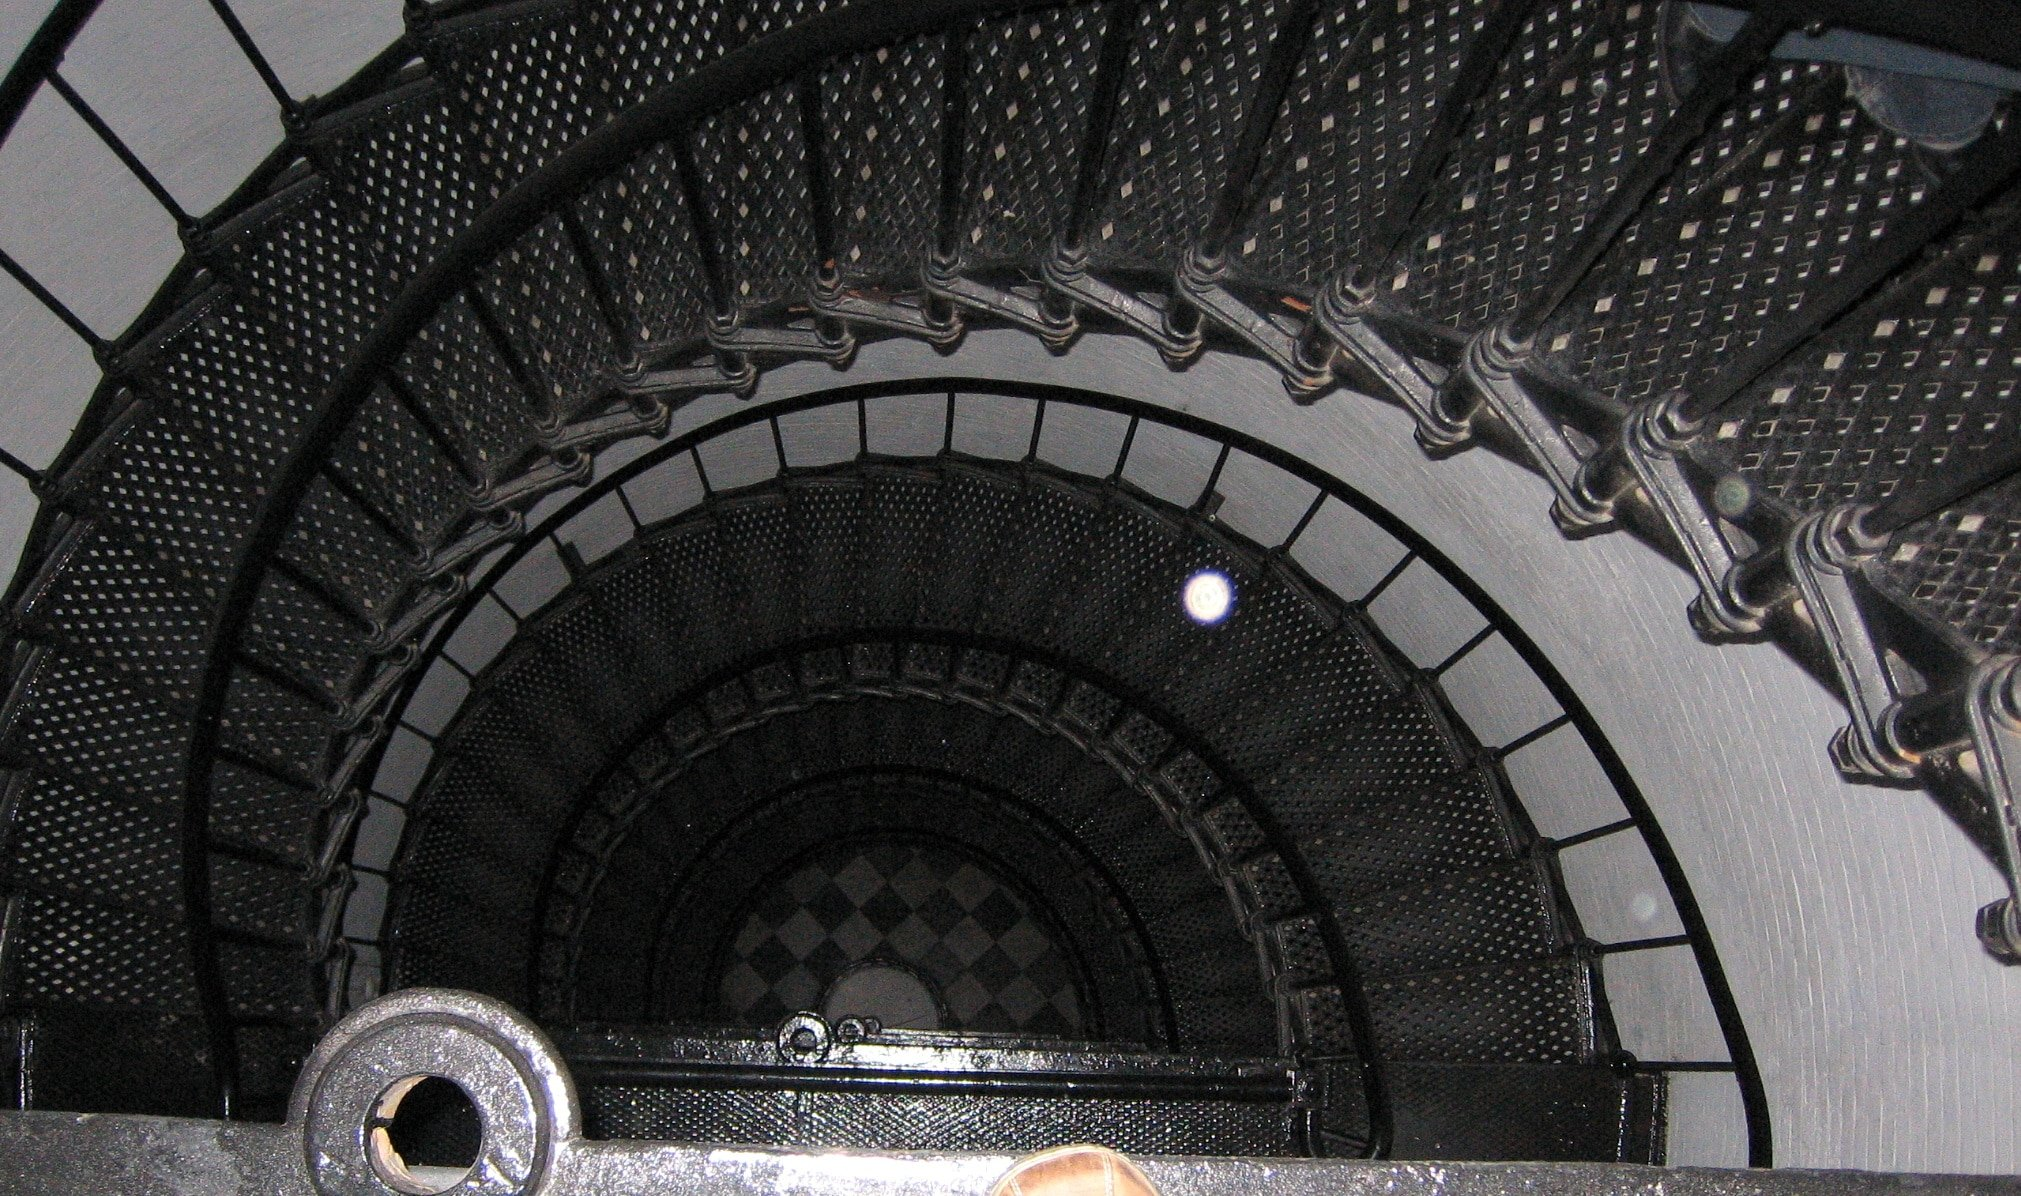 St Augustine Lighthouse Halloween Tour 2006 madeinaday.com